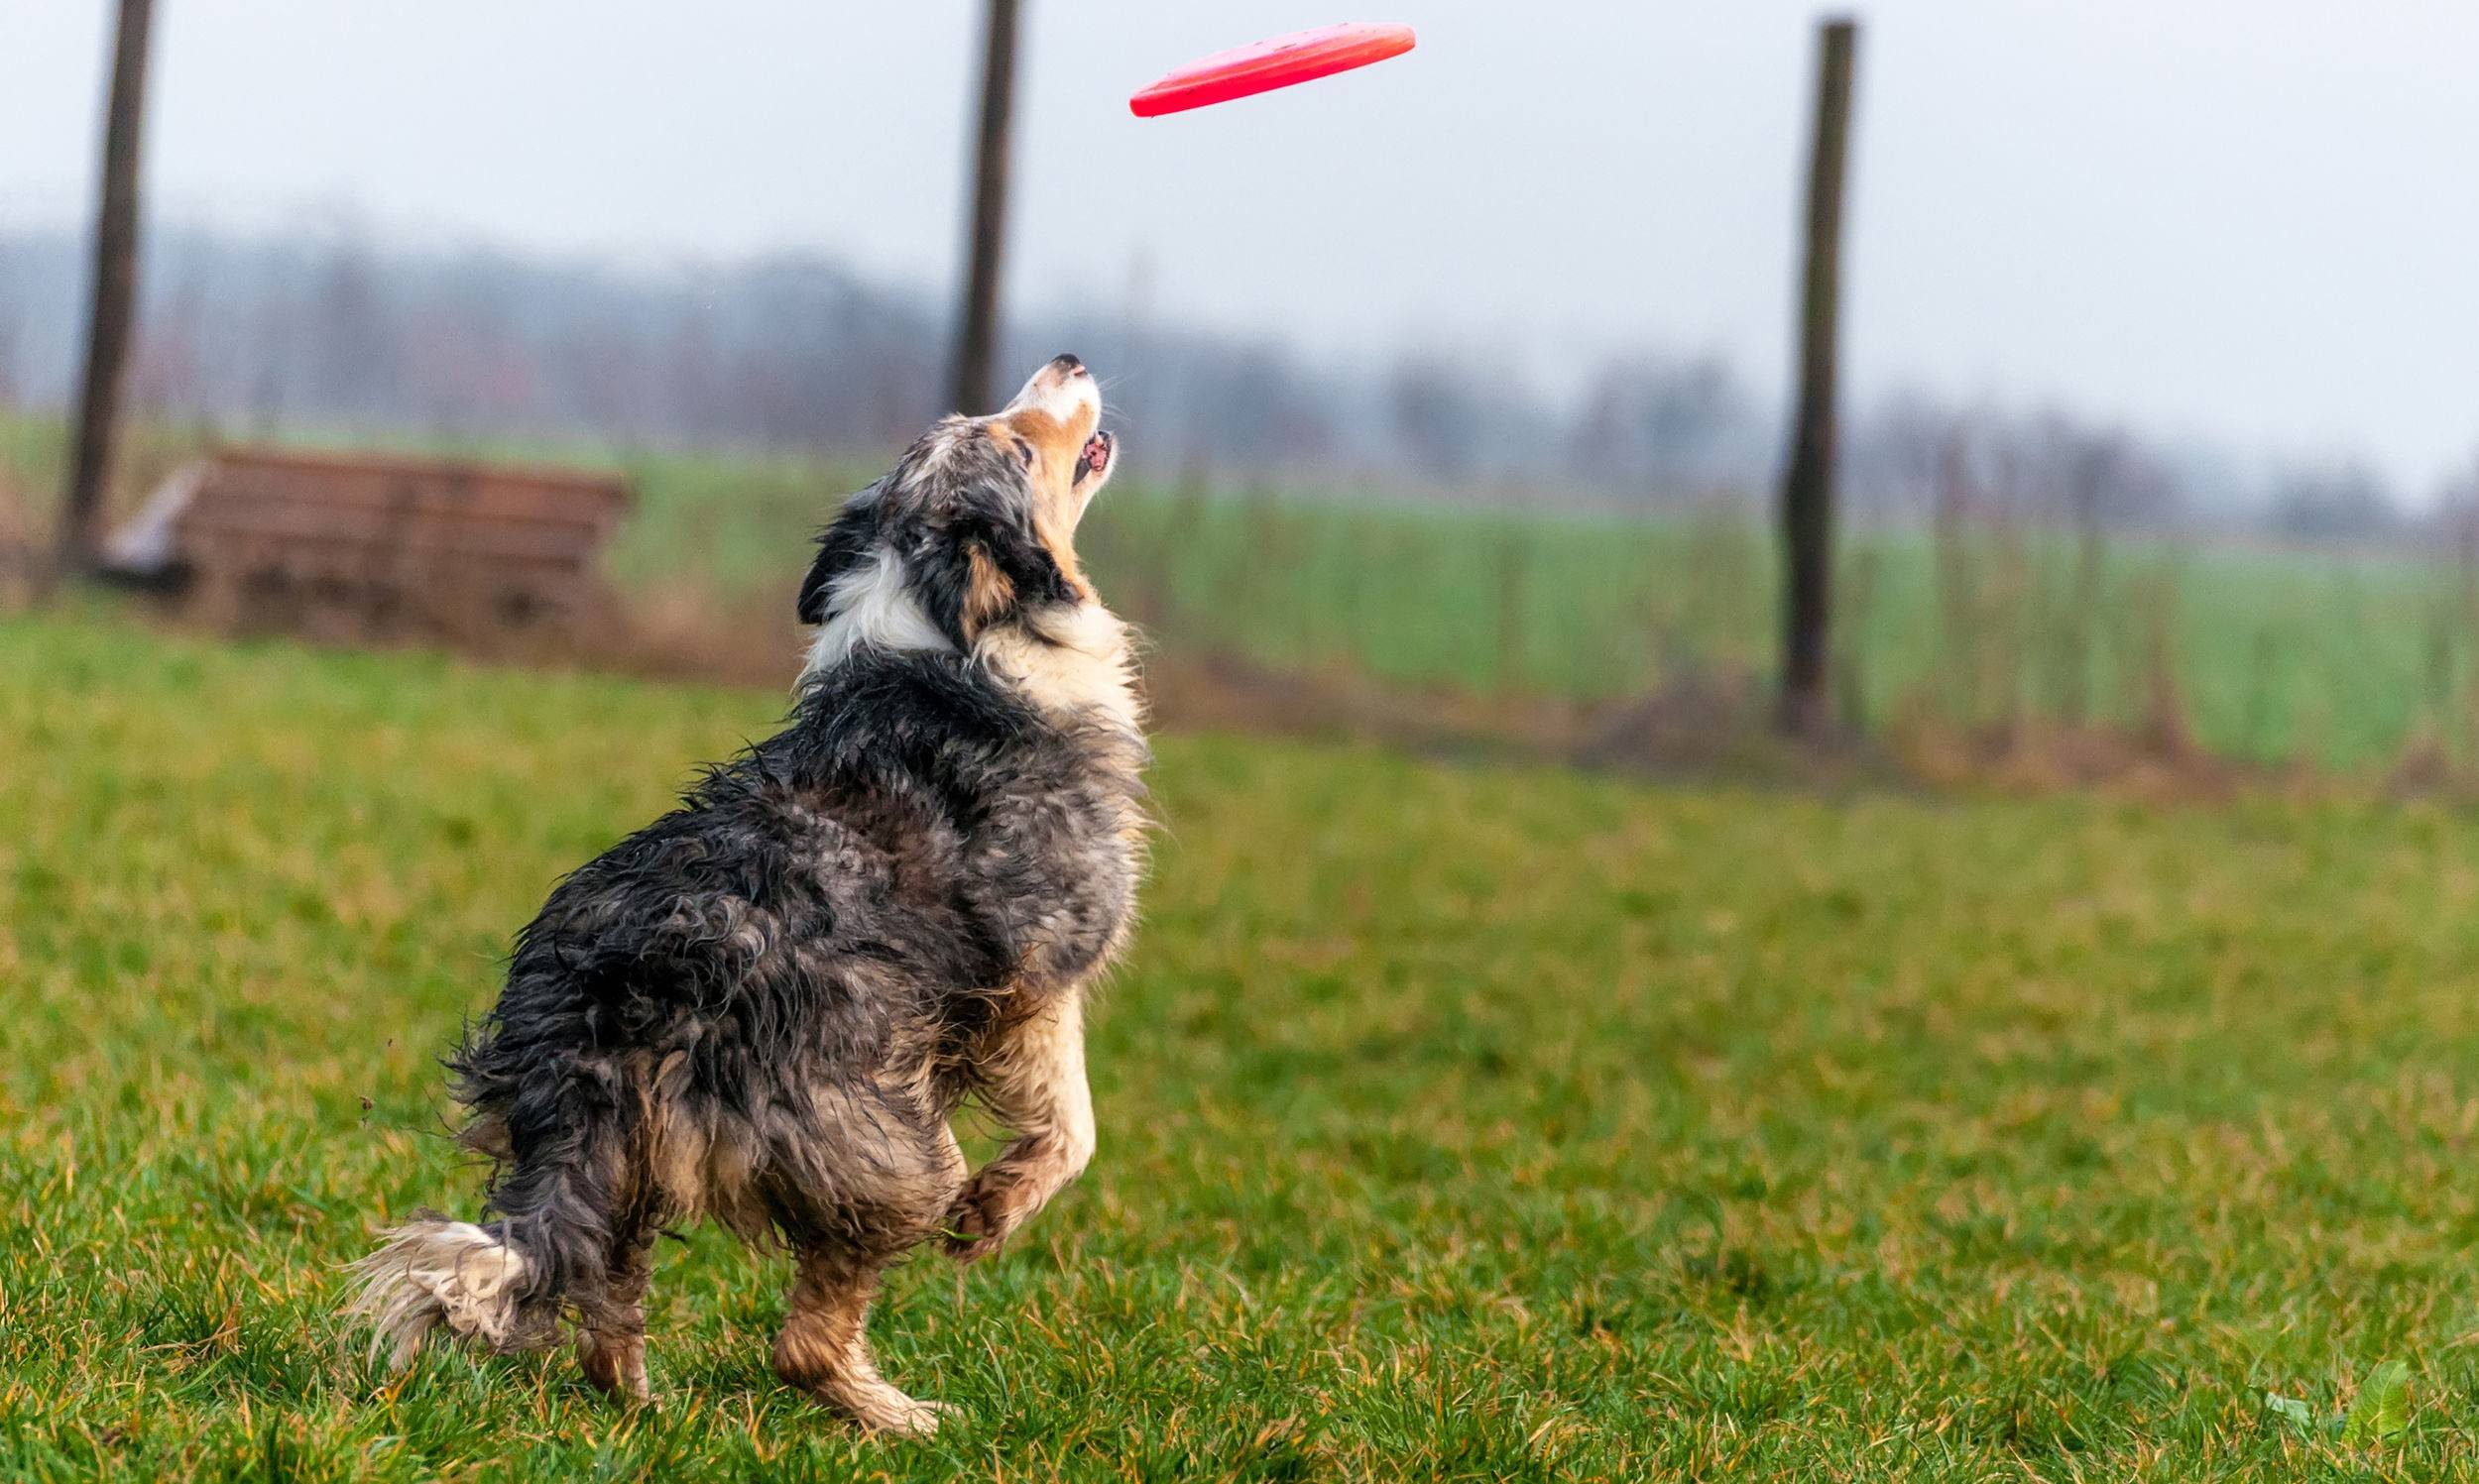 A border collie dog playing with a frisbee